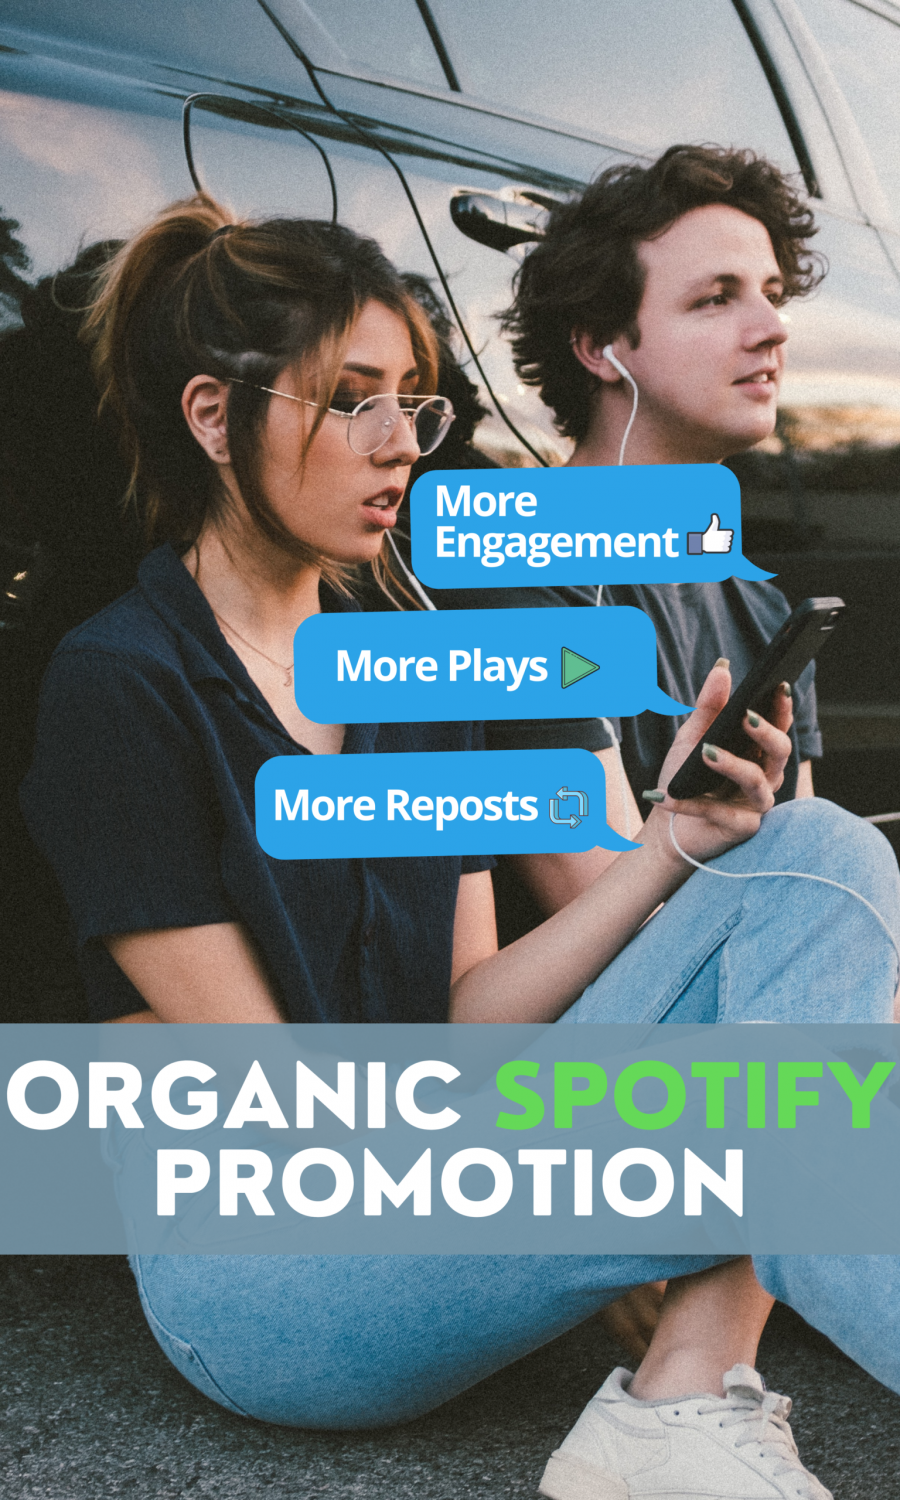 Organic Spotify Promotion Services